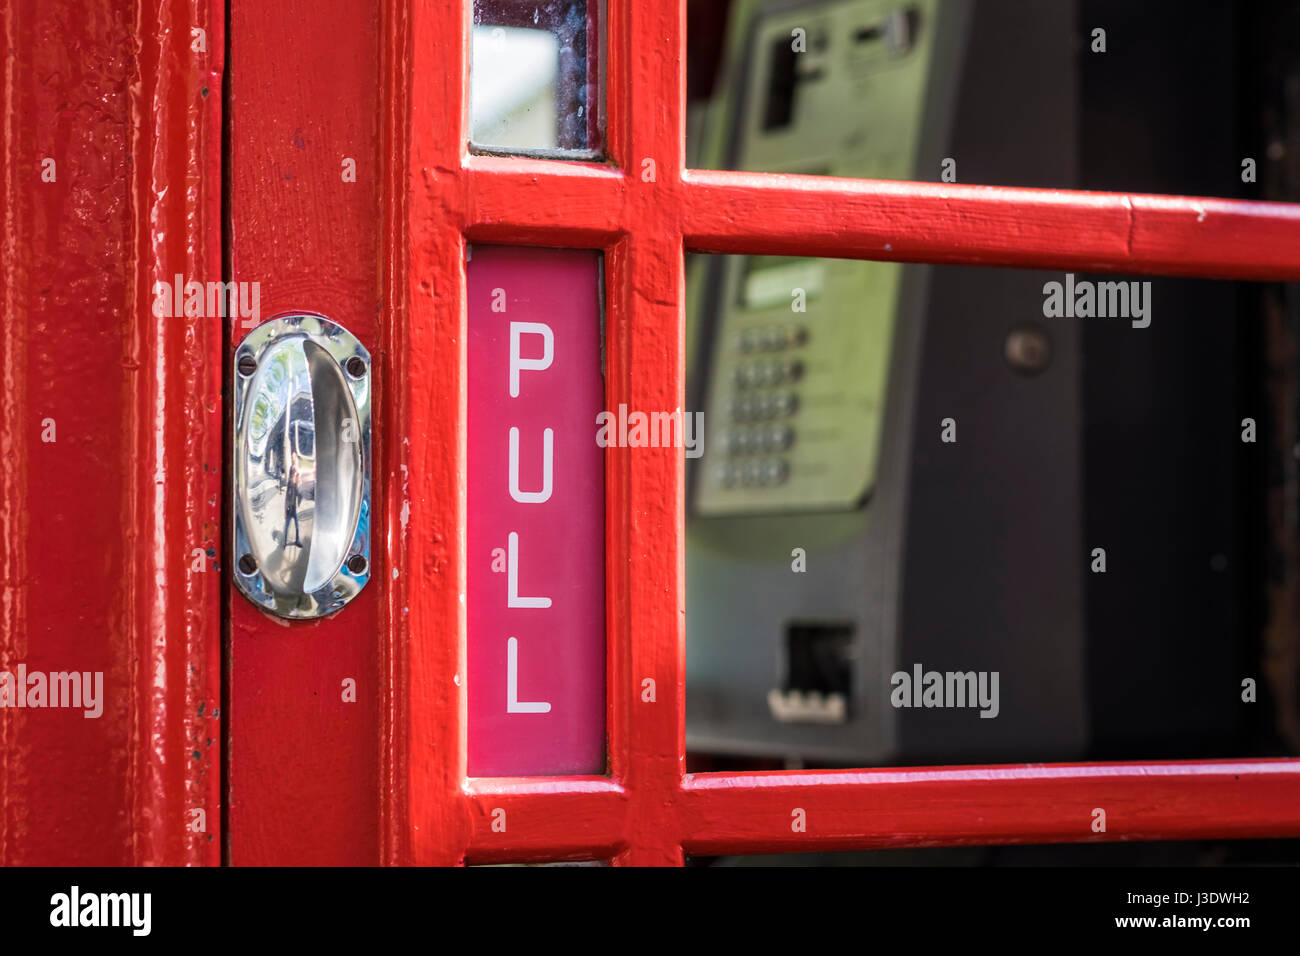 Pull Phone Box Wiring Diagrams Quad Power Supply Circuit Diagram Tradeoficcom Handle On Telephone Stock Photos Rh Alamy Com Fire